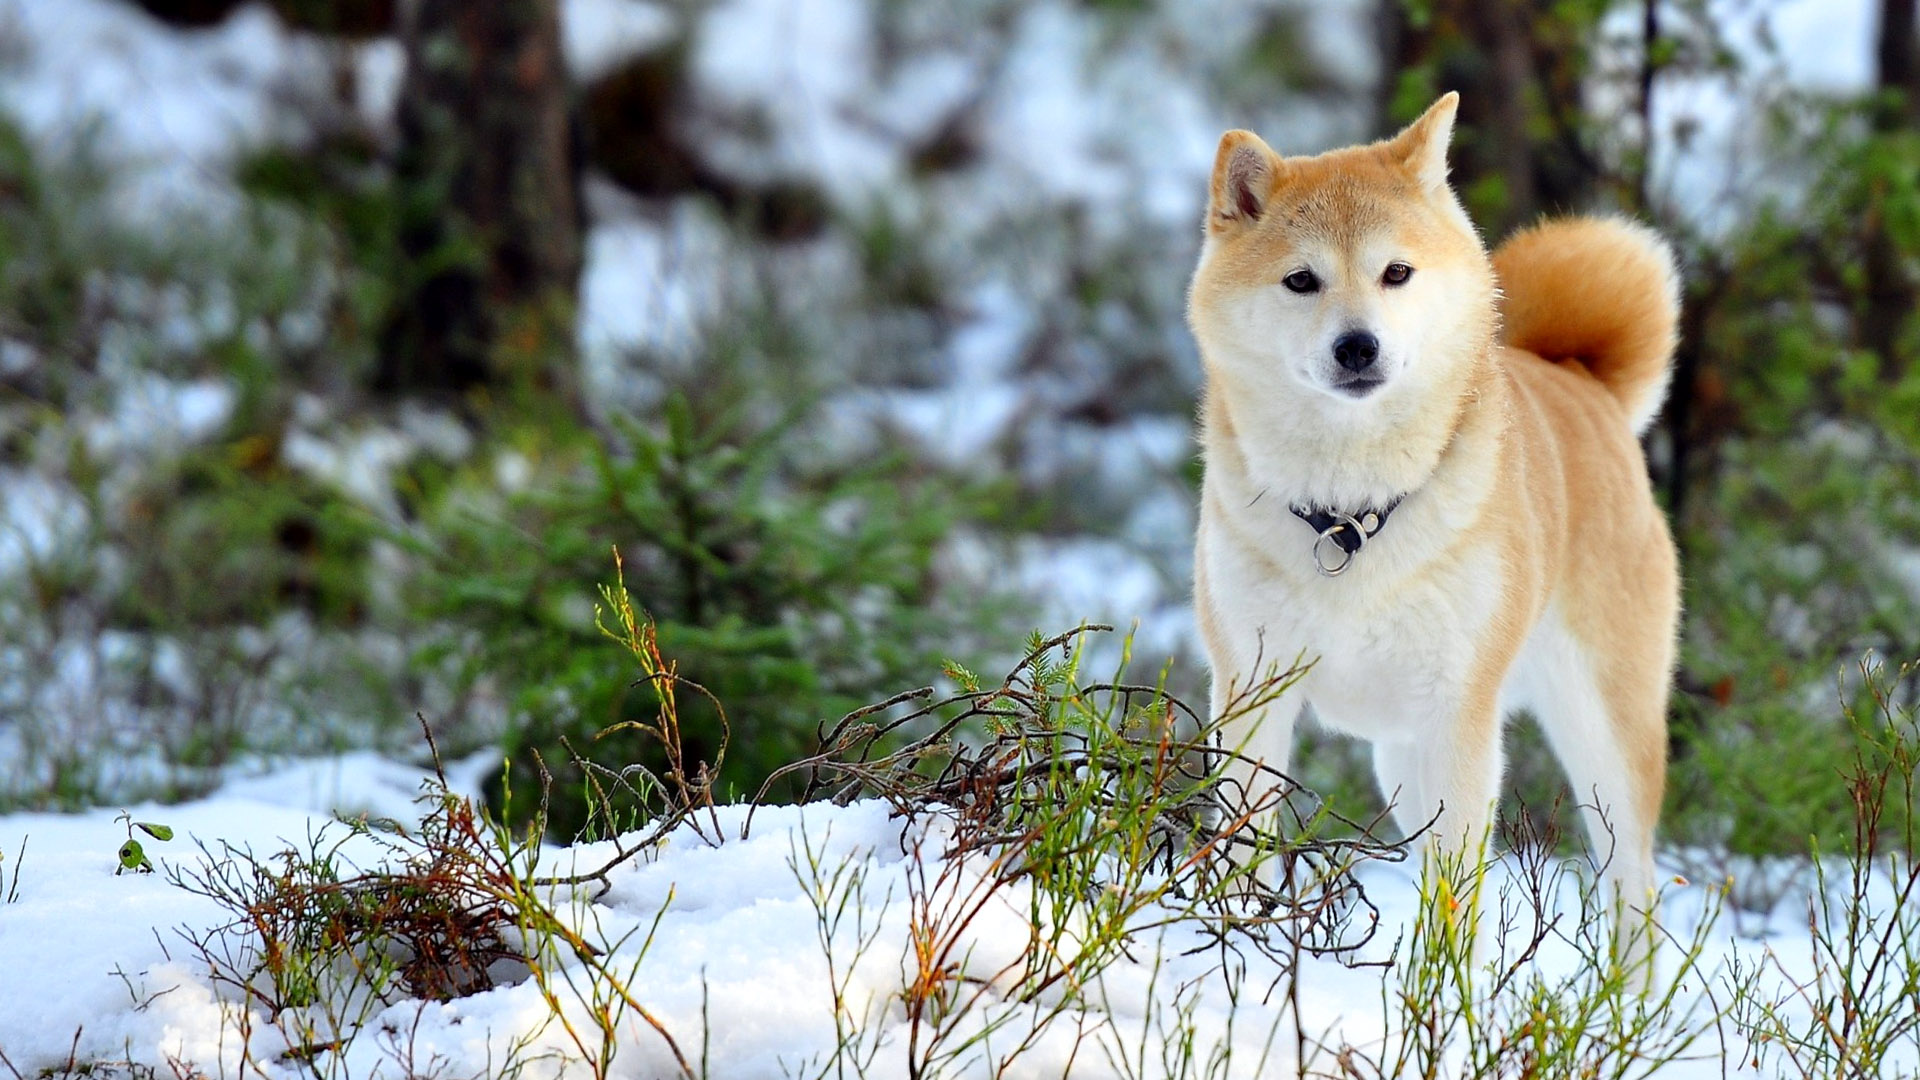 Akita Inu Dog Wallpaper Hd 1920x1080 Wallpaper Teahub Io